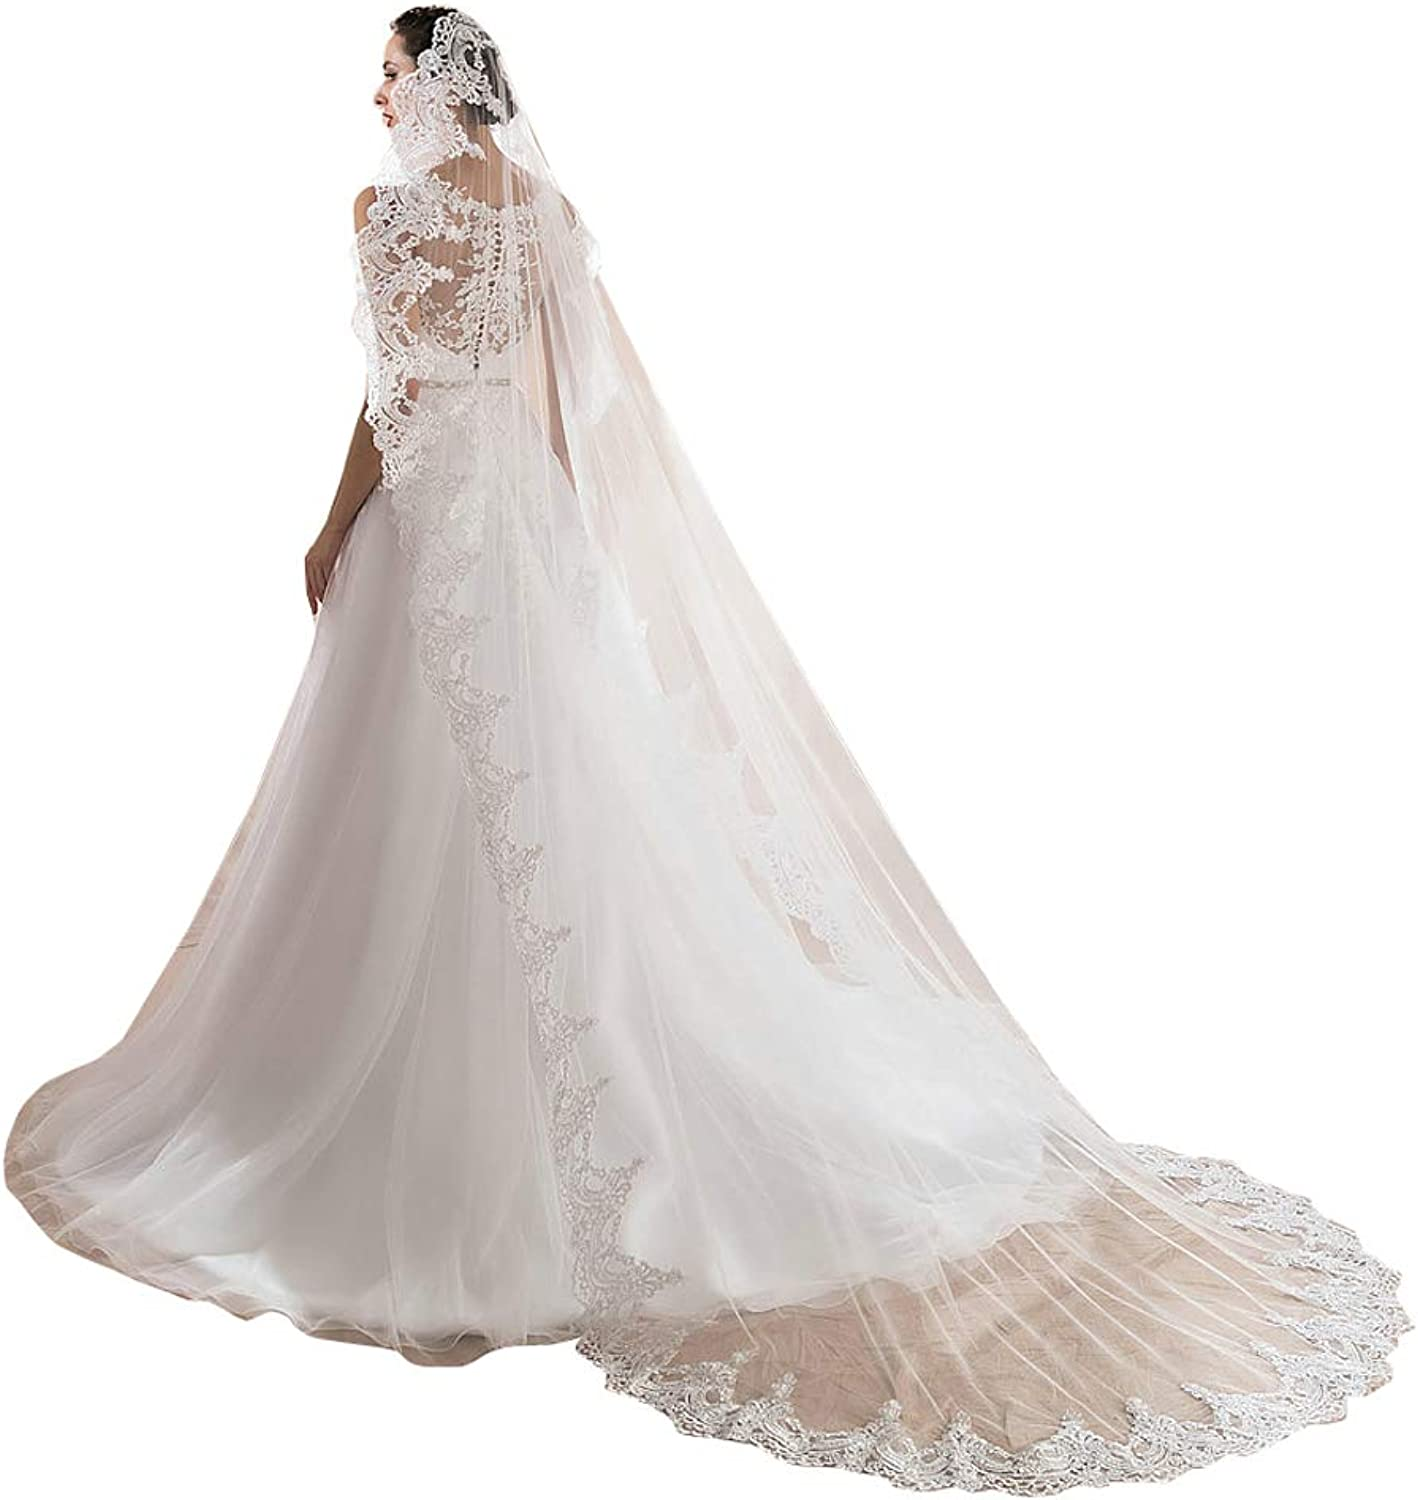 Kelaixiang Women White Ivory IT Lace Edge Cathedral Long Wedding Bridal Veil No Comb